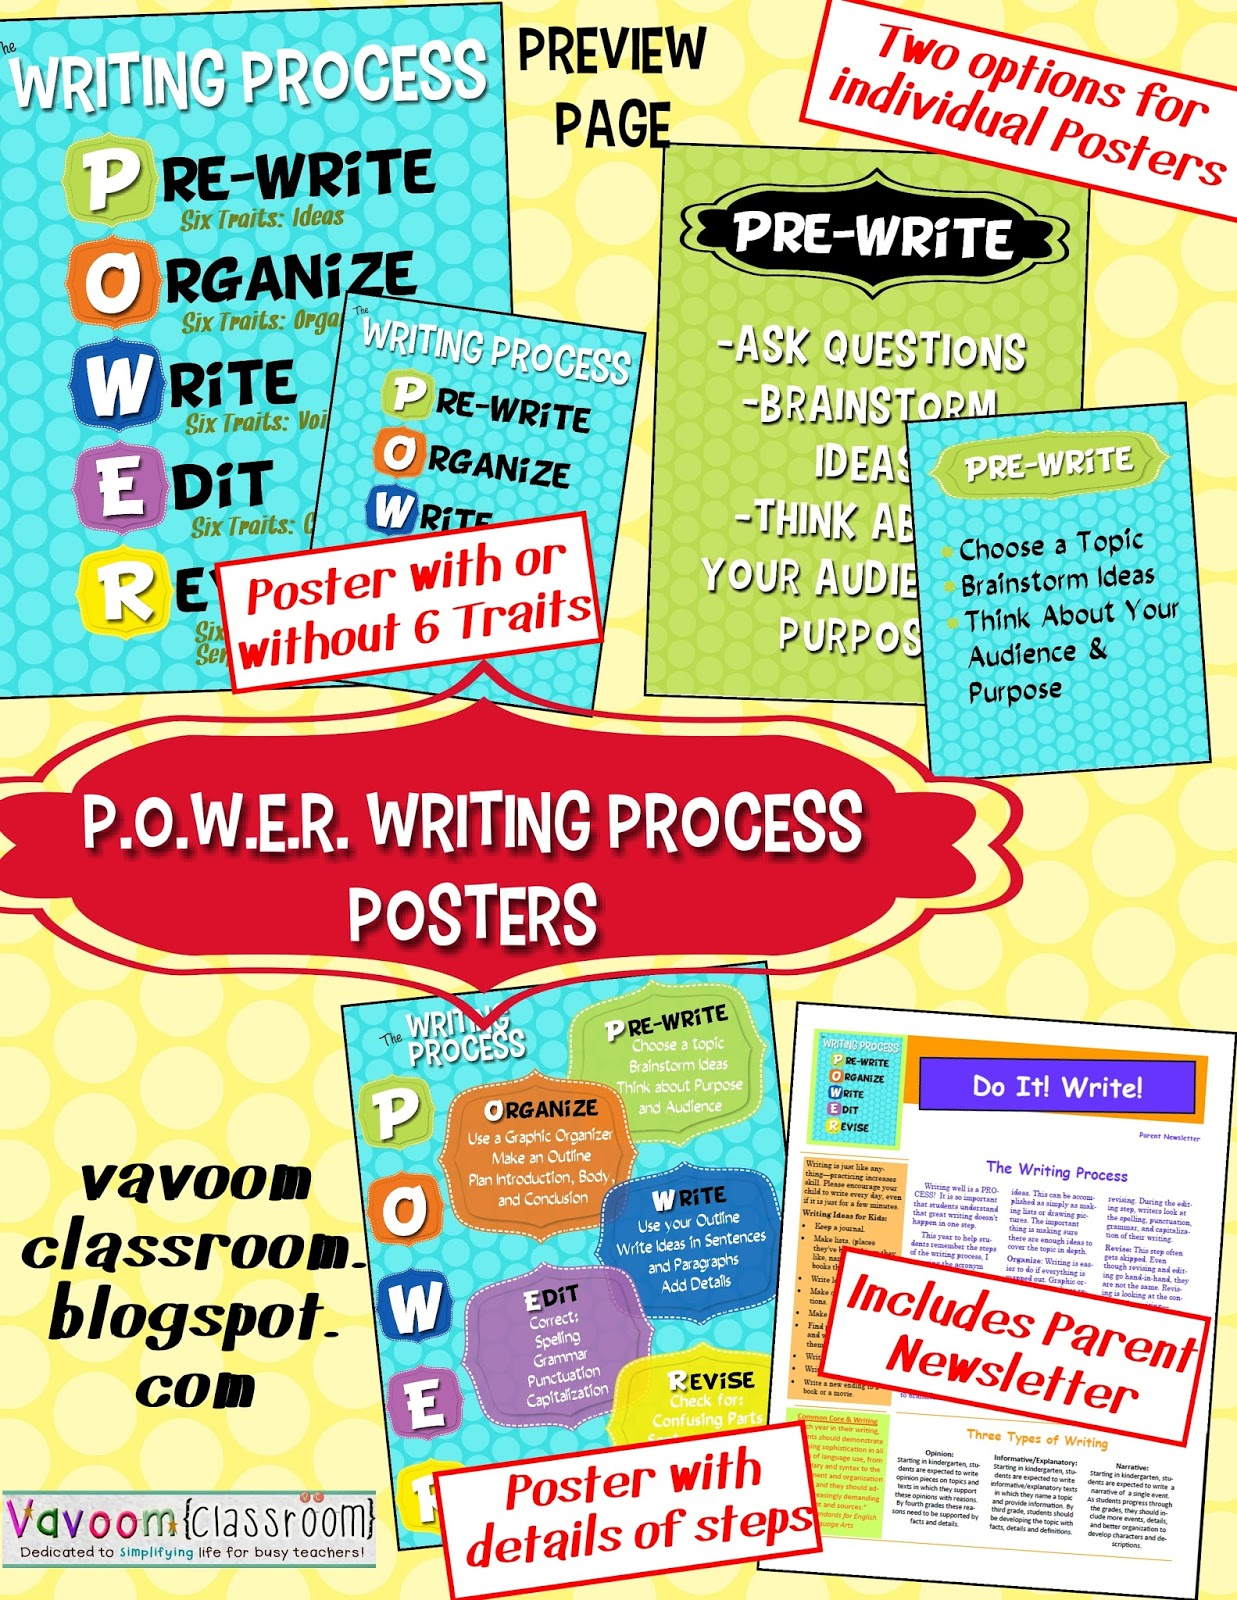 power writing process Writing with power: techniques for mastering the writing process by peter elbow in djvu, doc, epub download e-book.